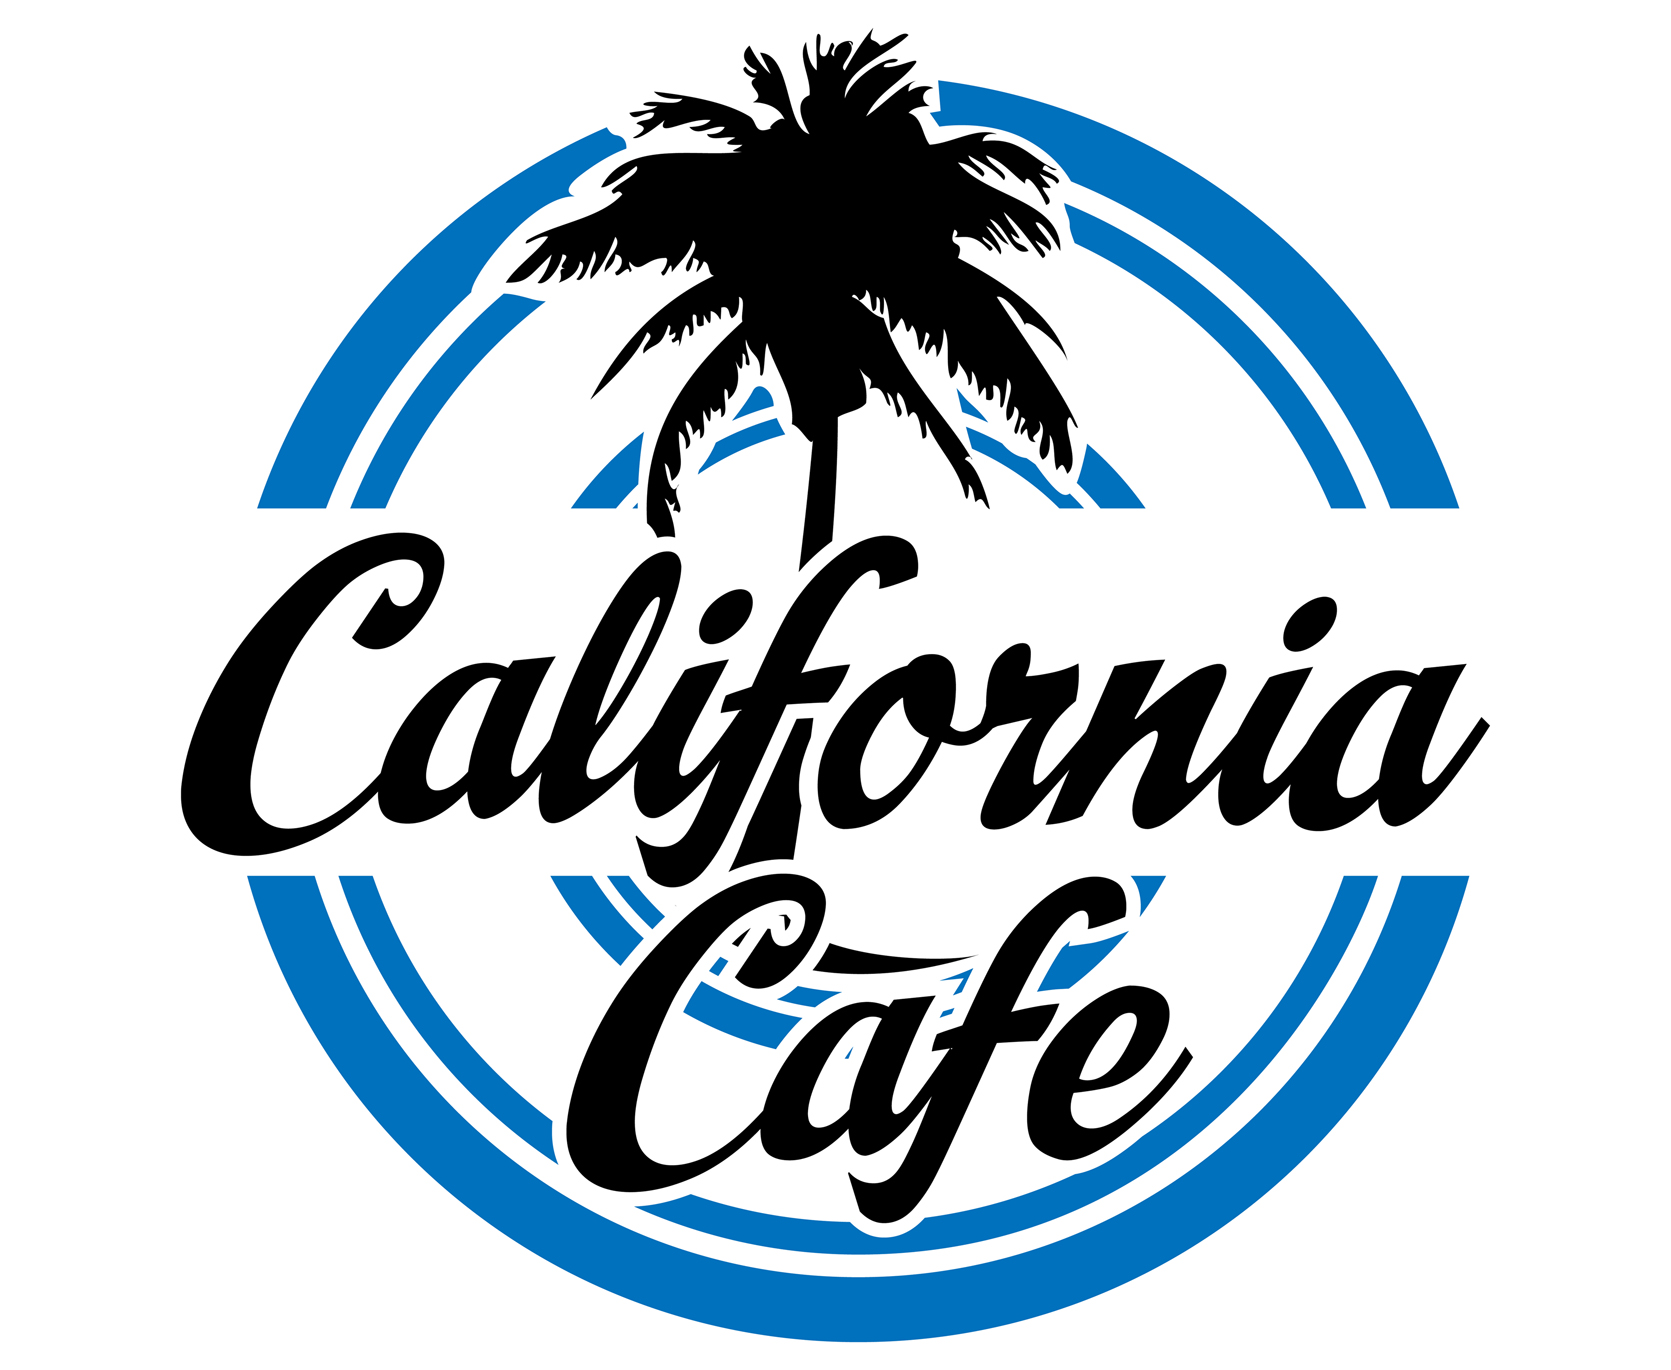 California Cafe